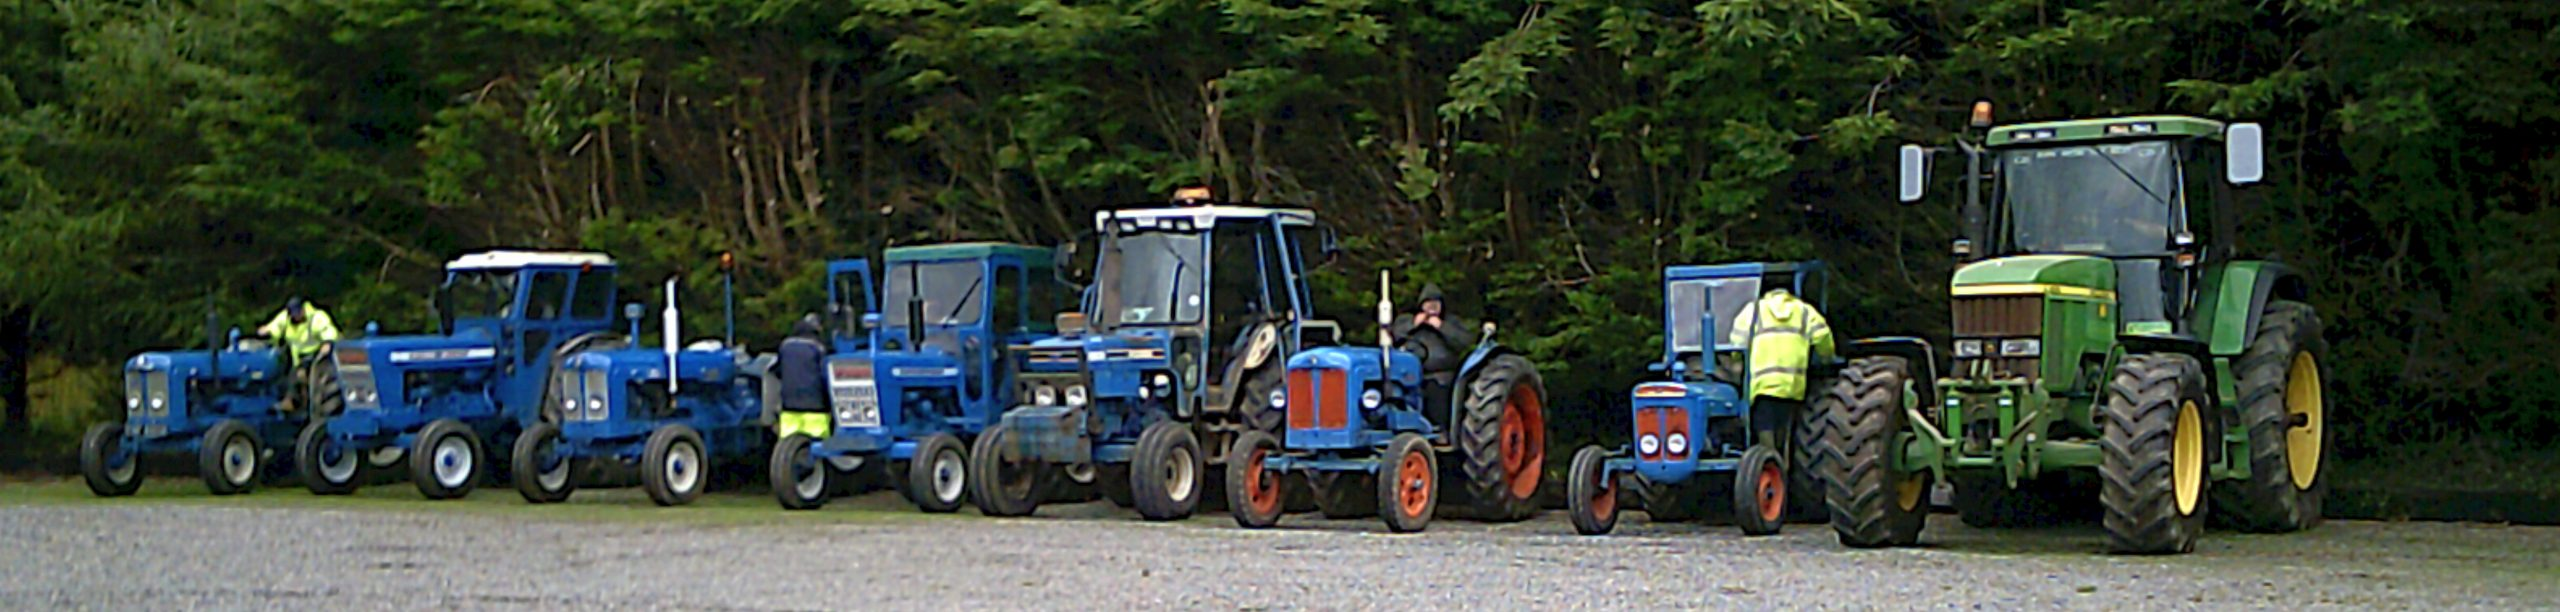 Line of tractors at the Countryman Restaurant